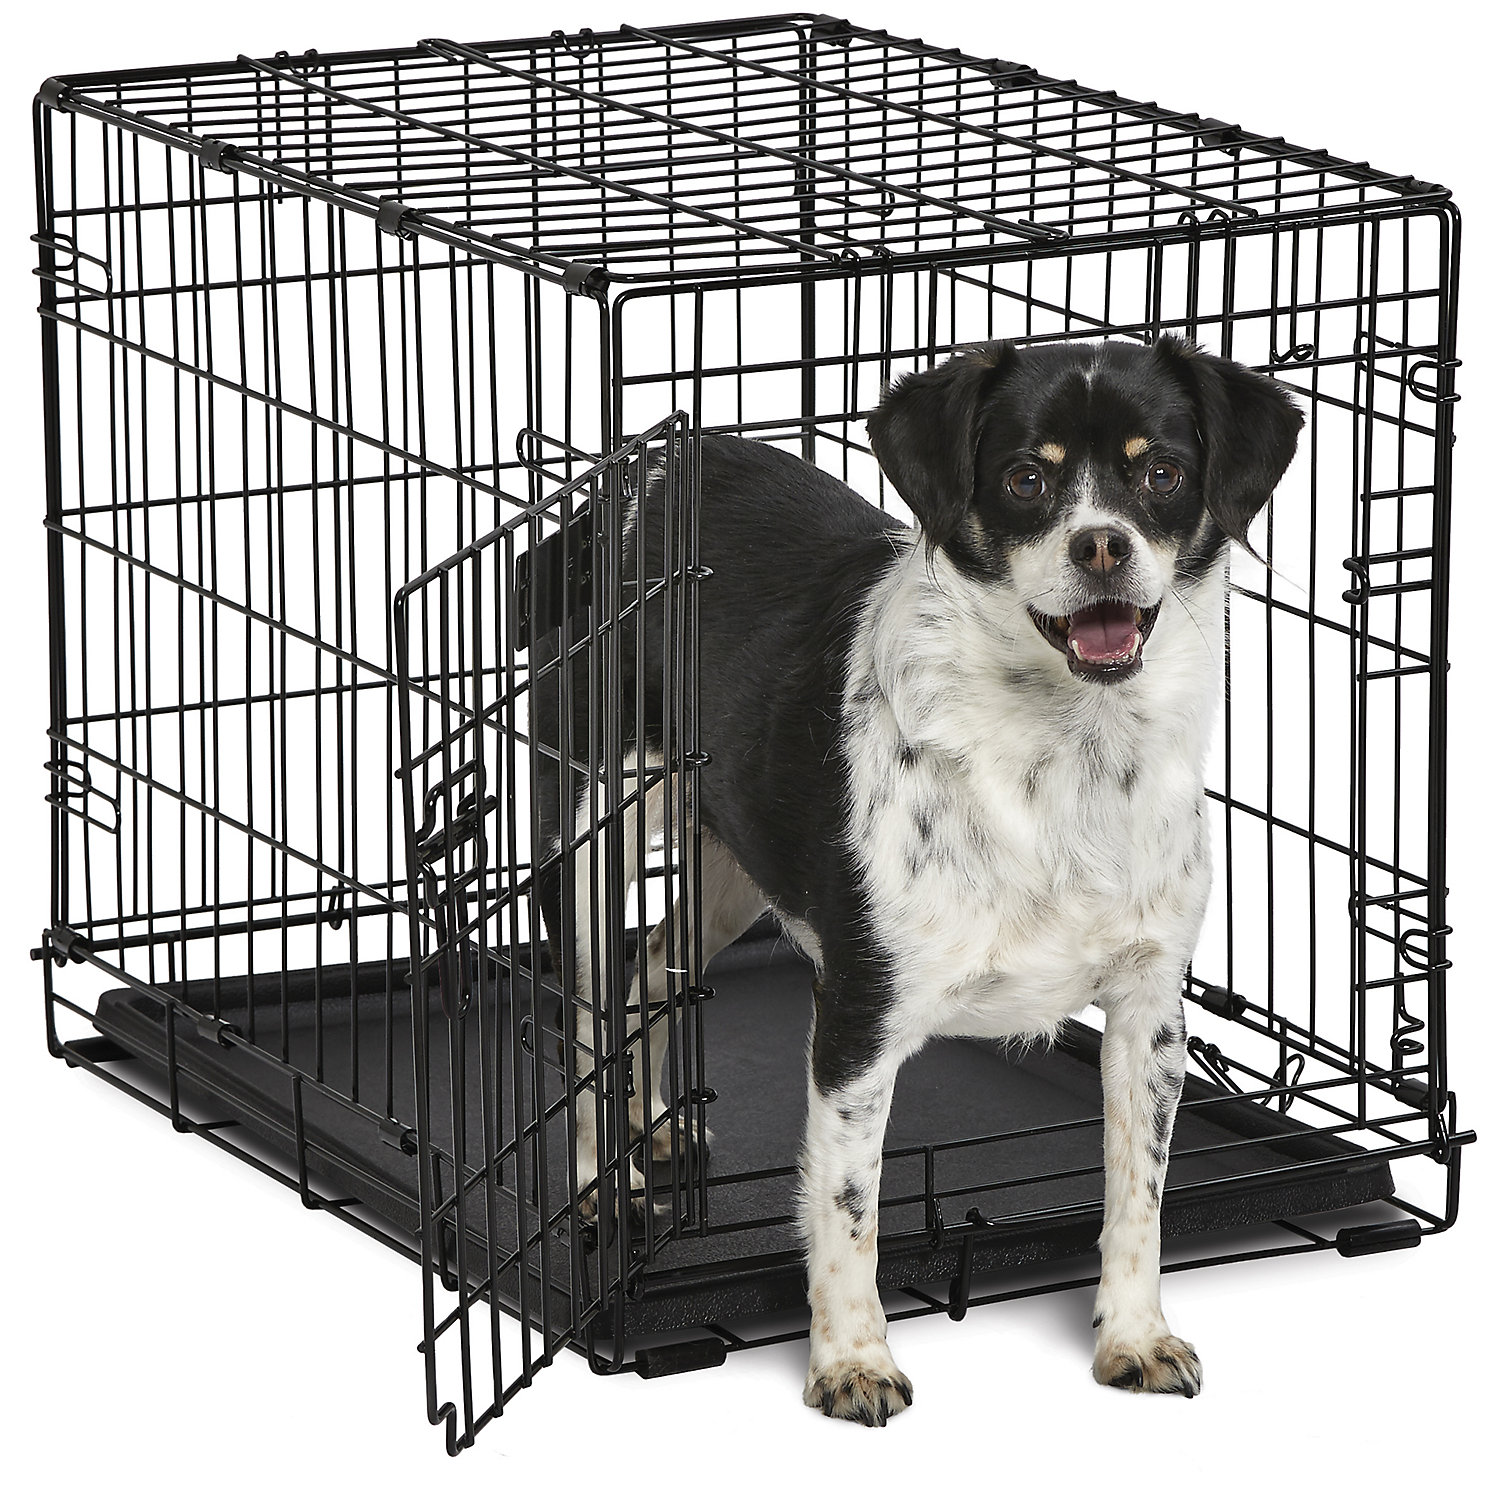 Midwest Contour Folding Dog Crate 25.25 L X 17.5 W X 19.5 H Small Black